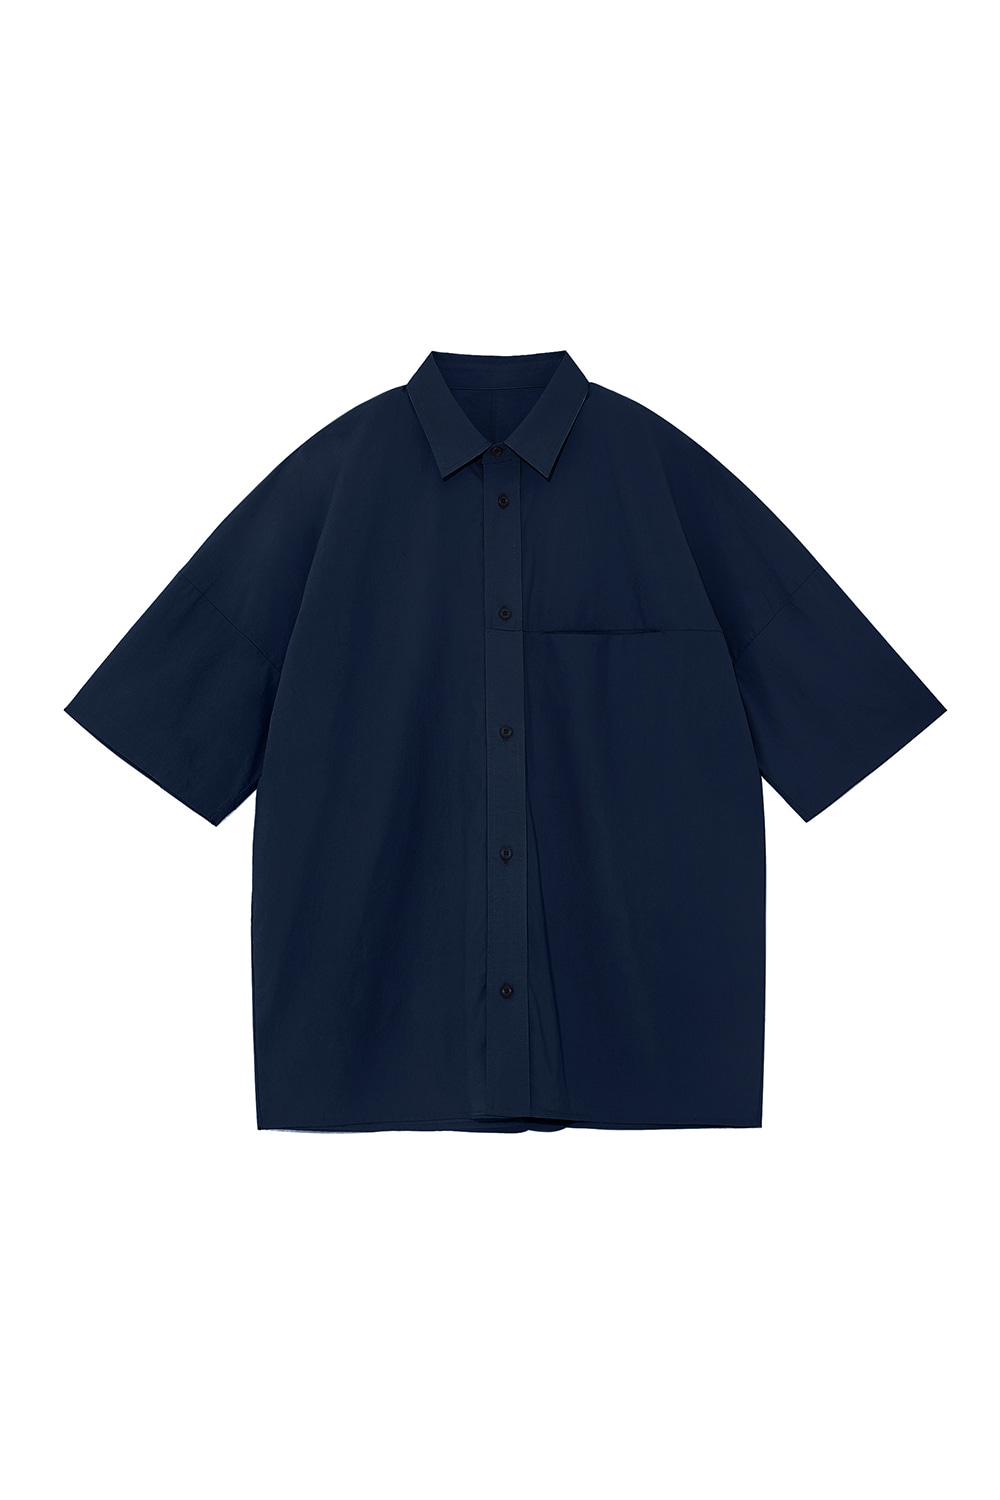 Oversized Box Shirts Men [Navy]